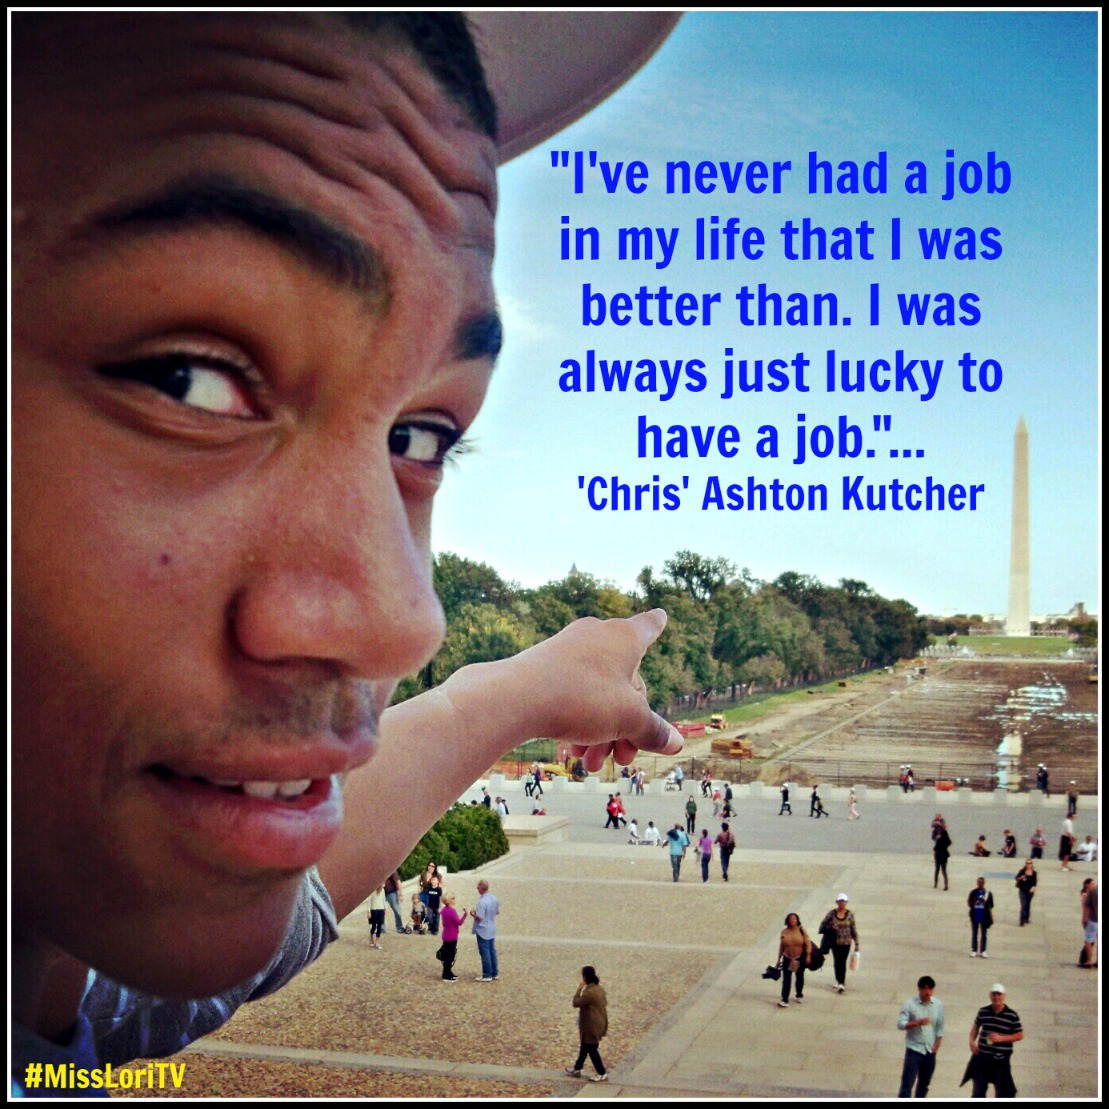 Ashton Kutcher's quote #7